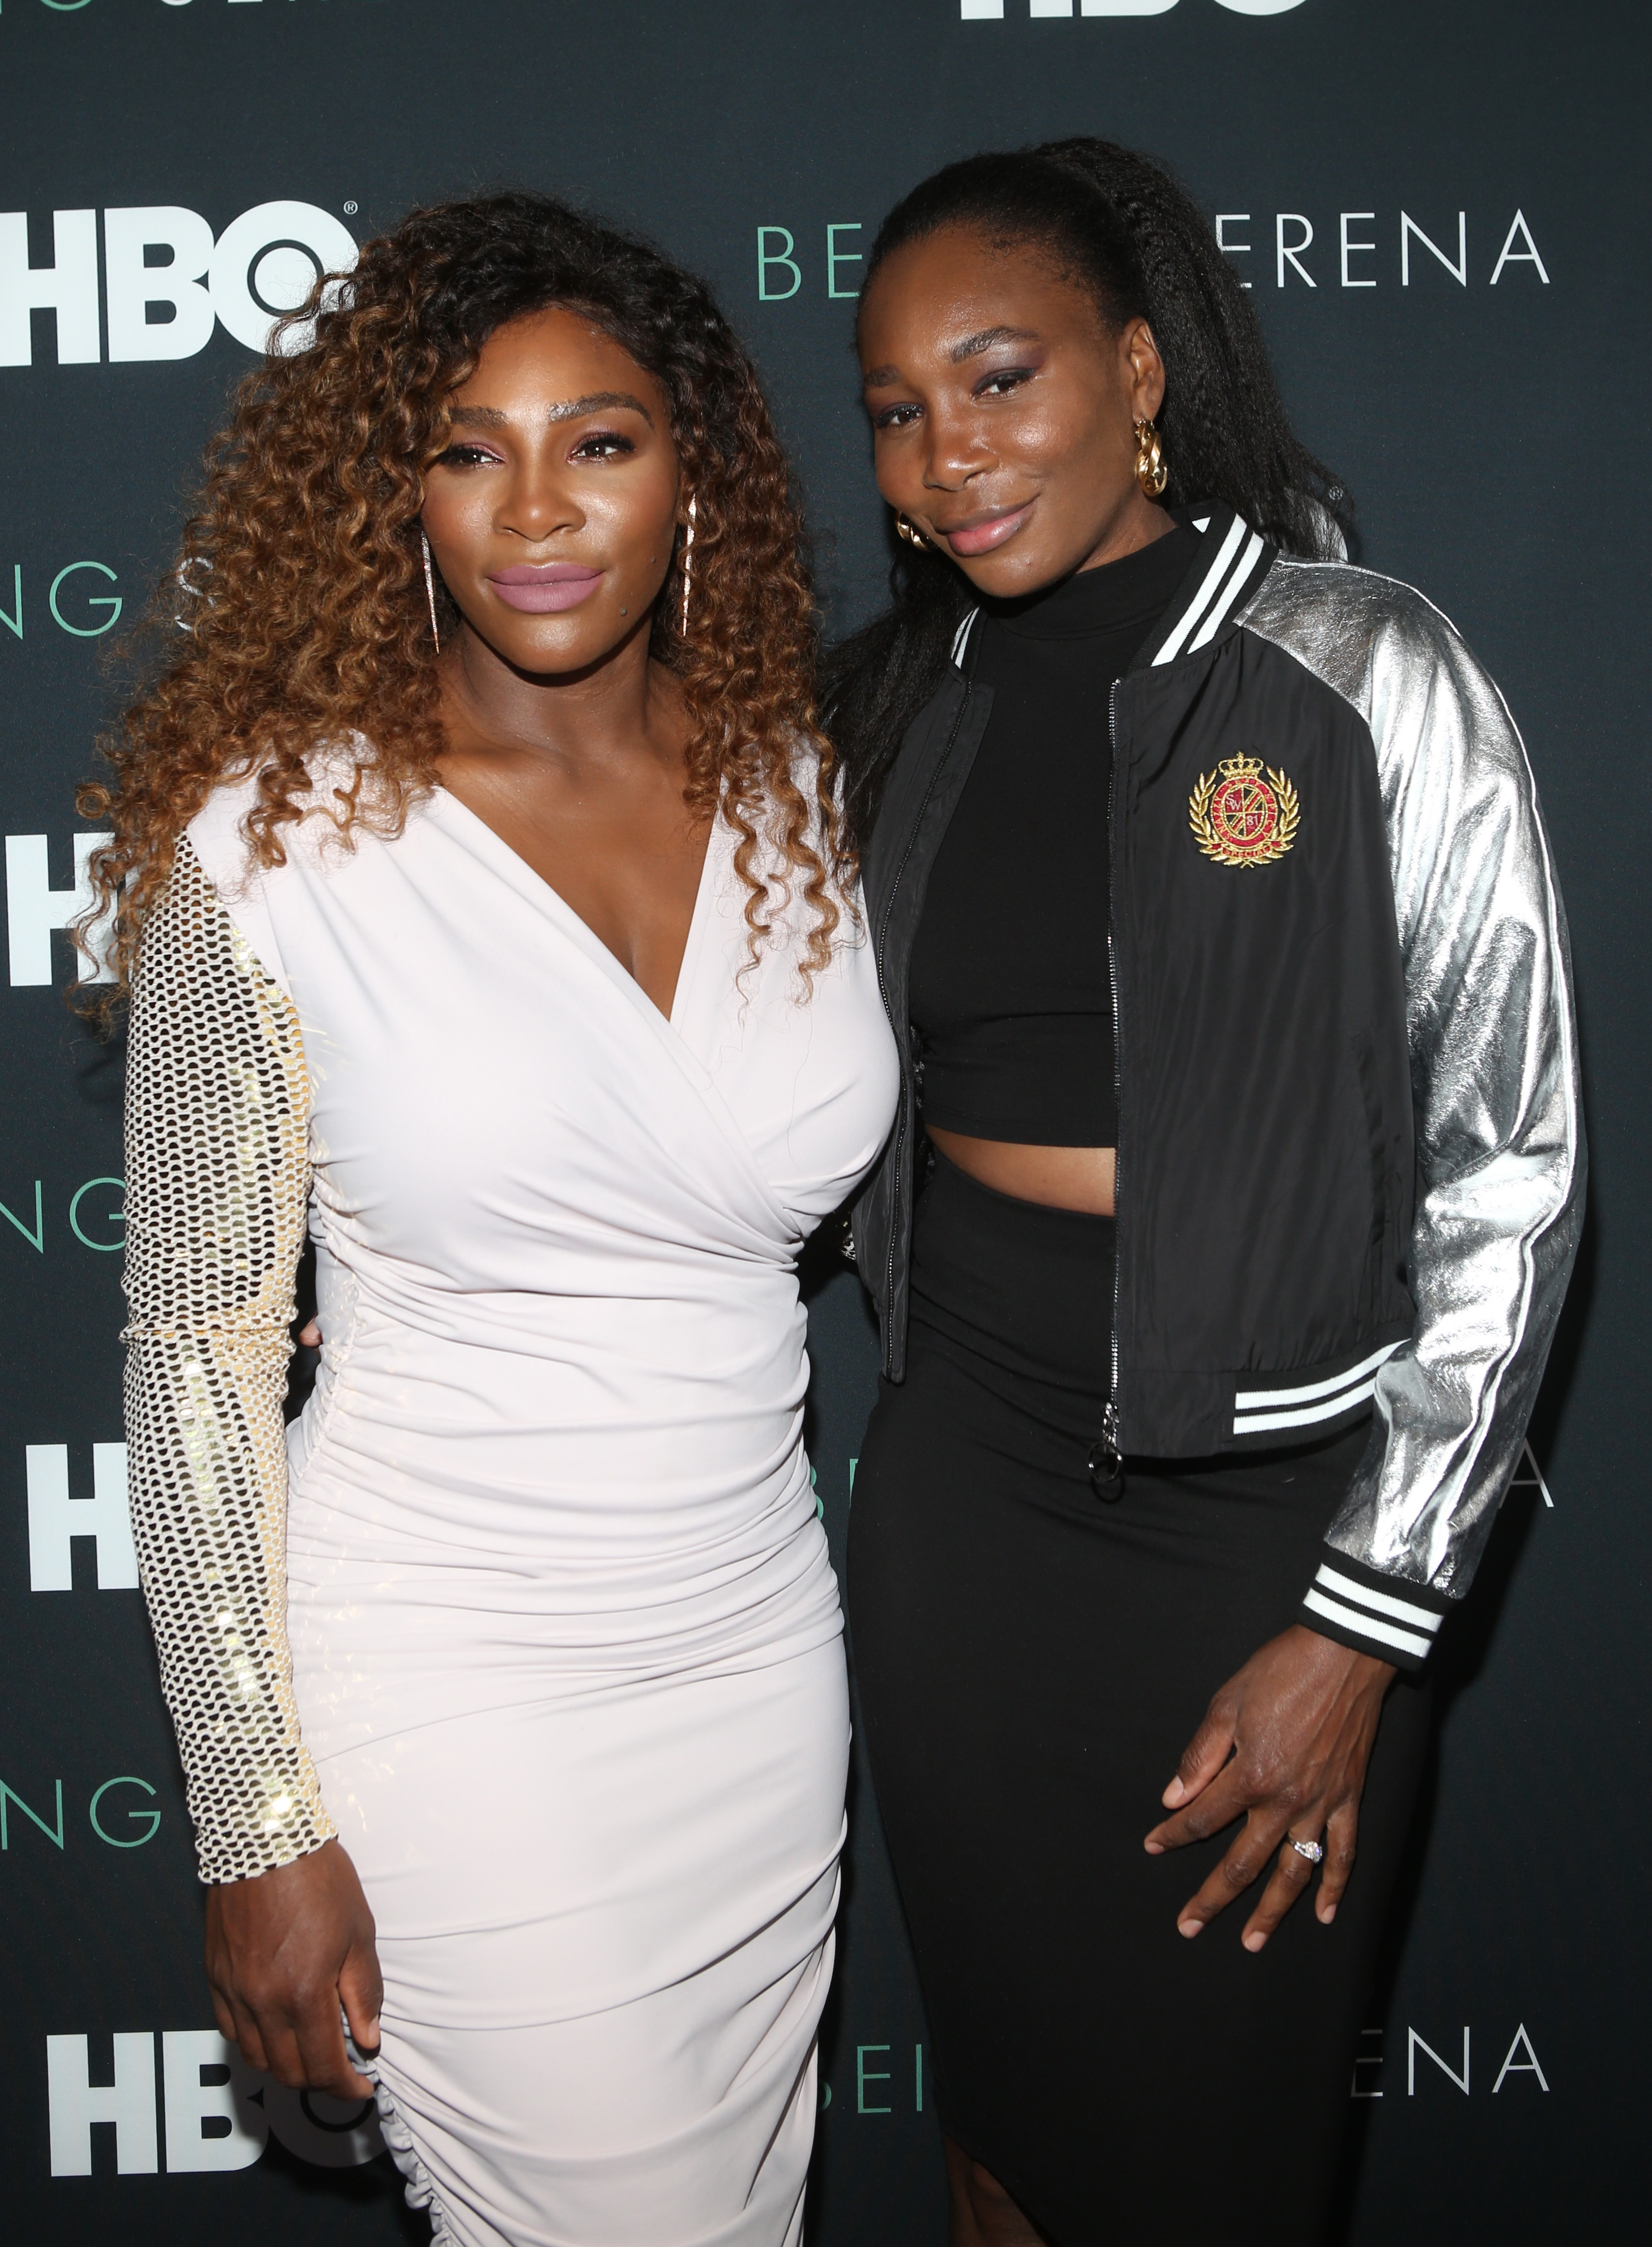 HBO New York Premiere of 'Being Serena'